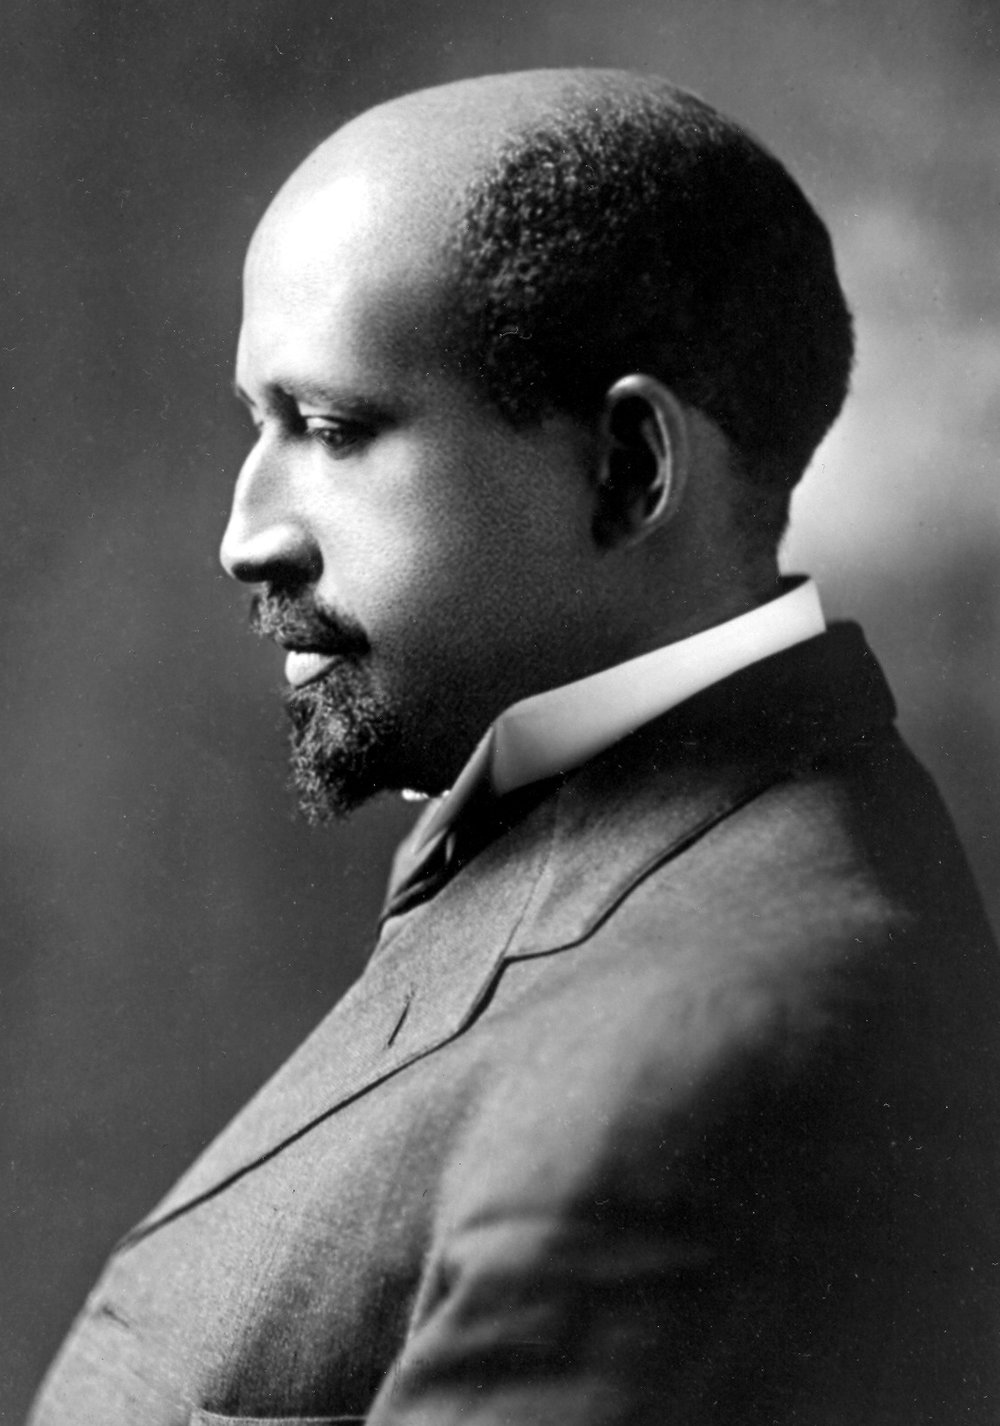 W.E.B. DuBois' quotes are a rich source of intellectual content and much of what he wrote about are still problems today.